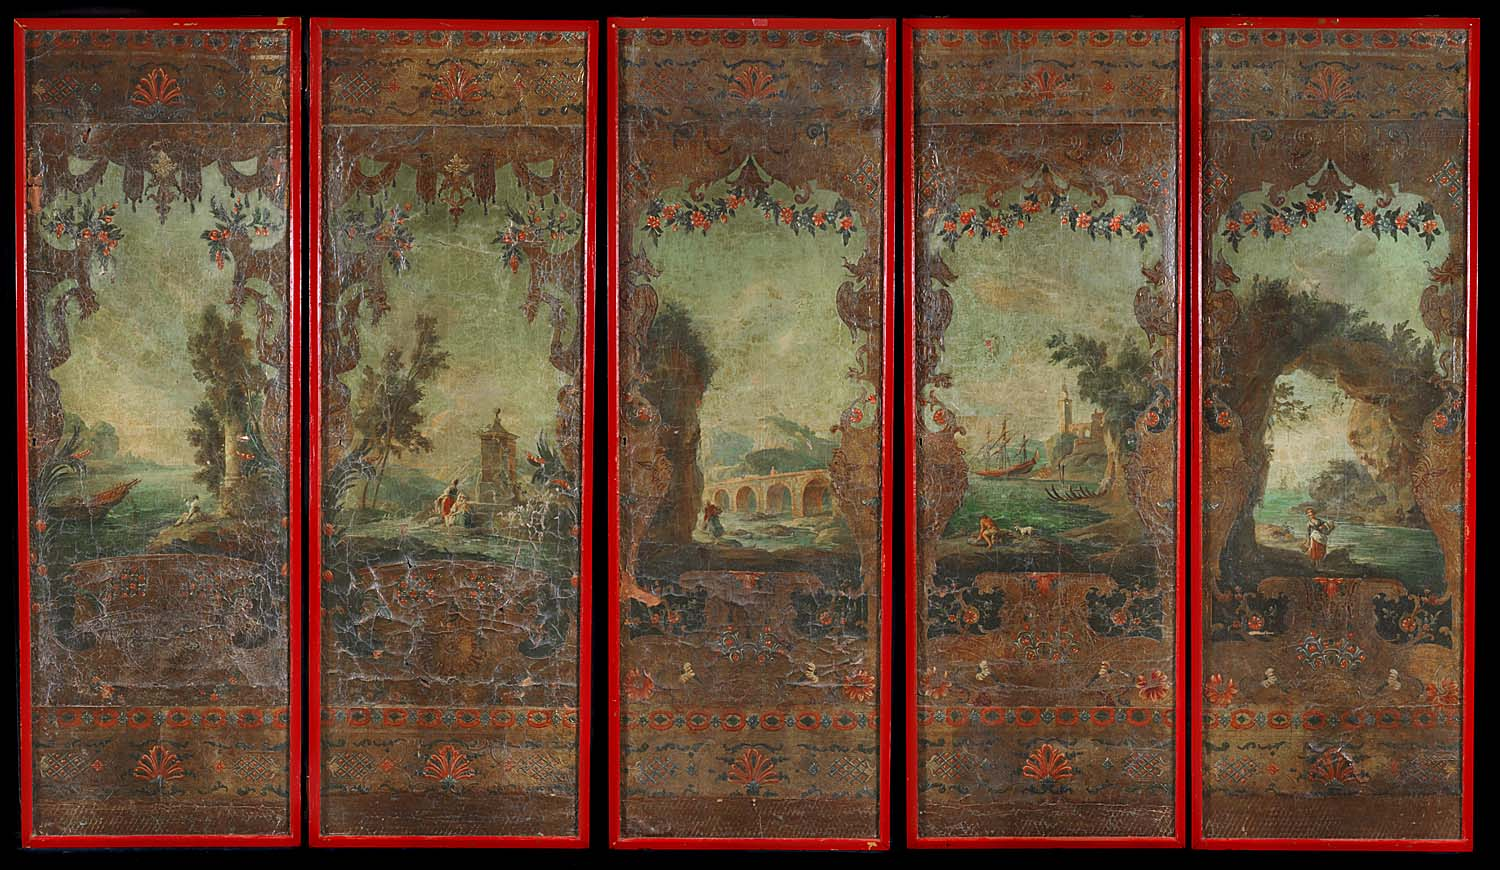 A set of five 18th century embossed and painted antique leather panels